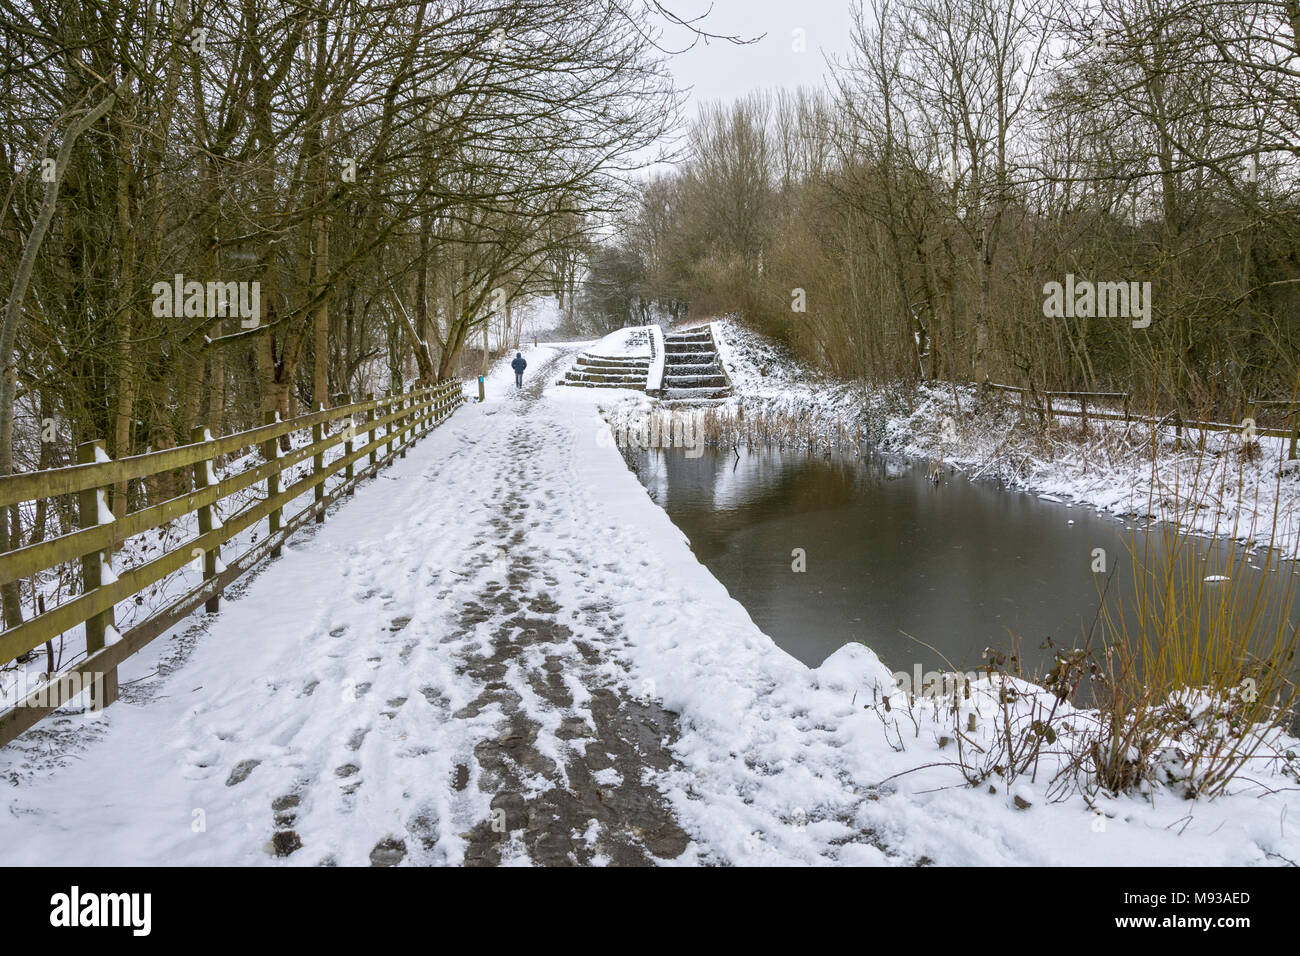 The former Hollinwood Branch Canal at Daisy Nook Country Park, Failsworth, Manchester, England, UK - Stock Image